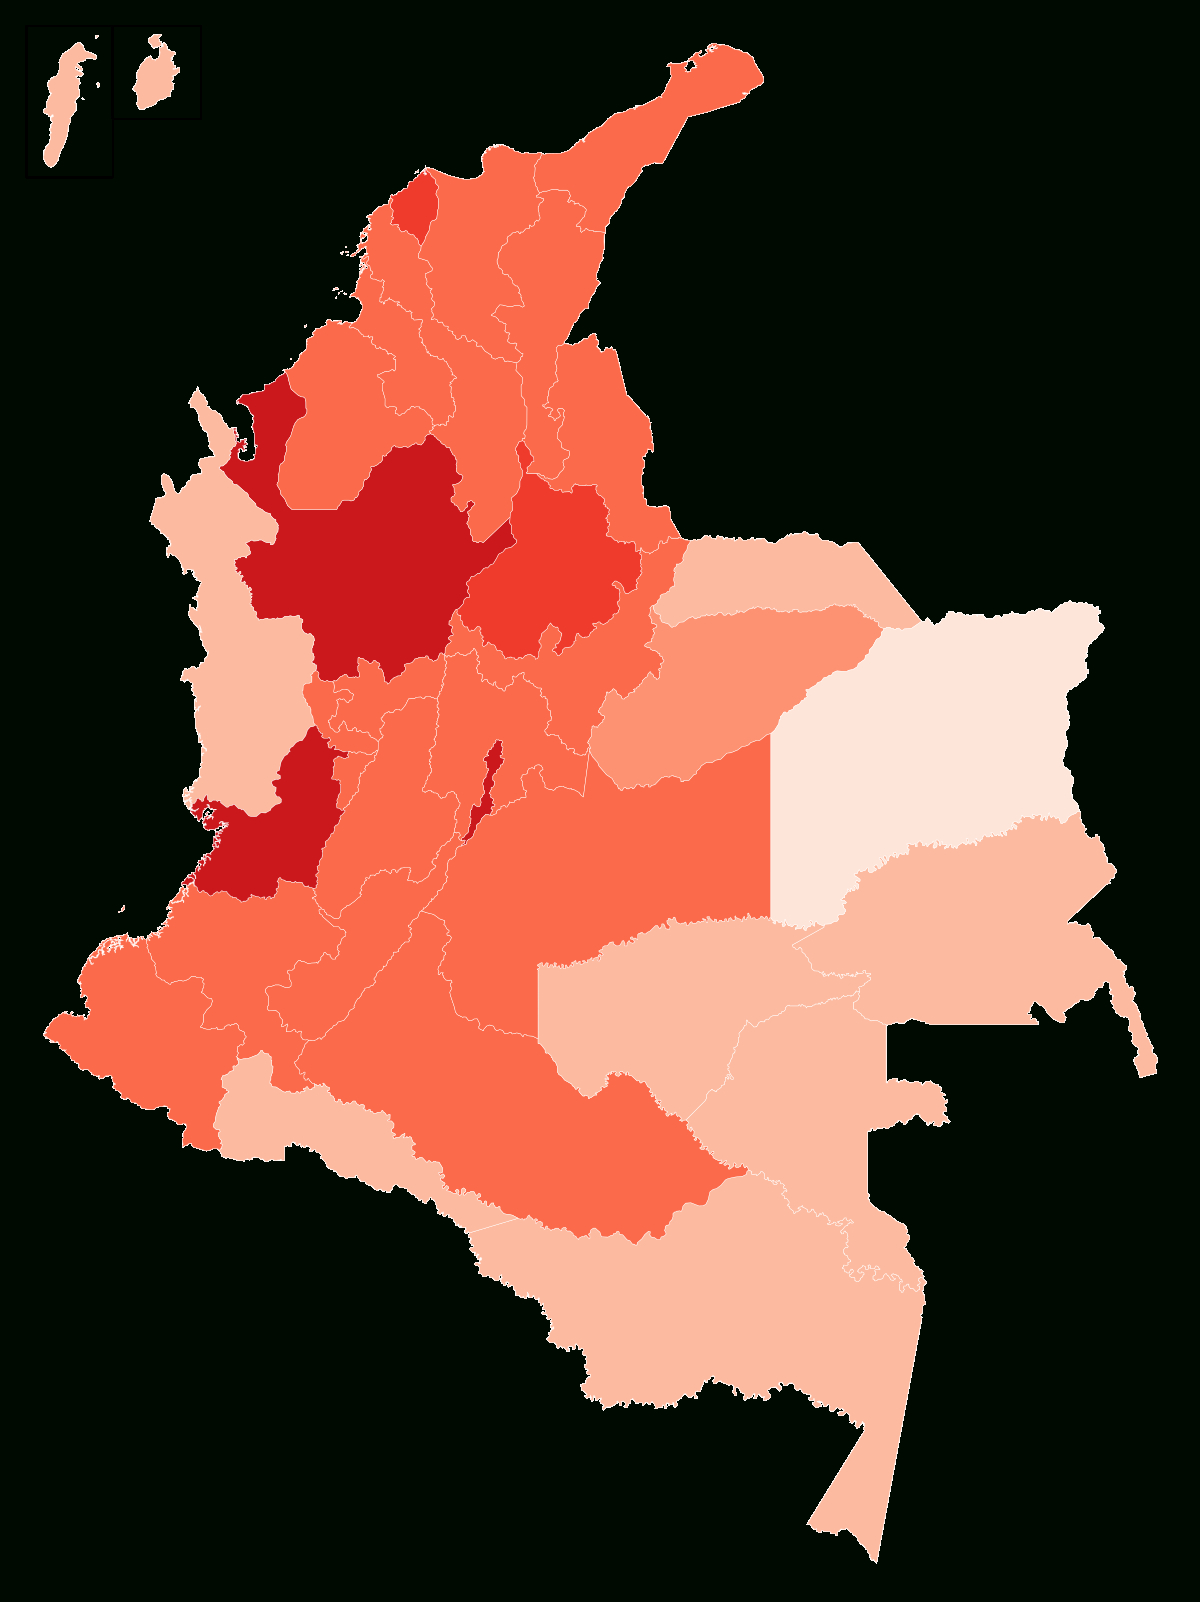 Covid-19 Pandemic In Colombia - Wikipedia for Printable 2021 Mcgeer Criteria Chart